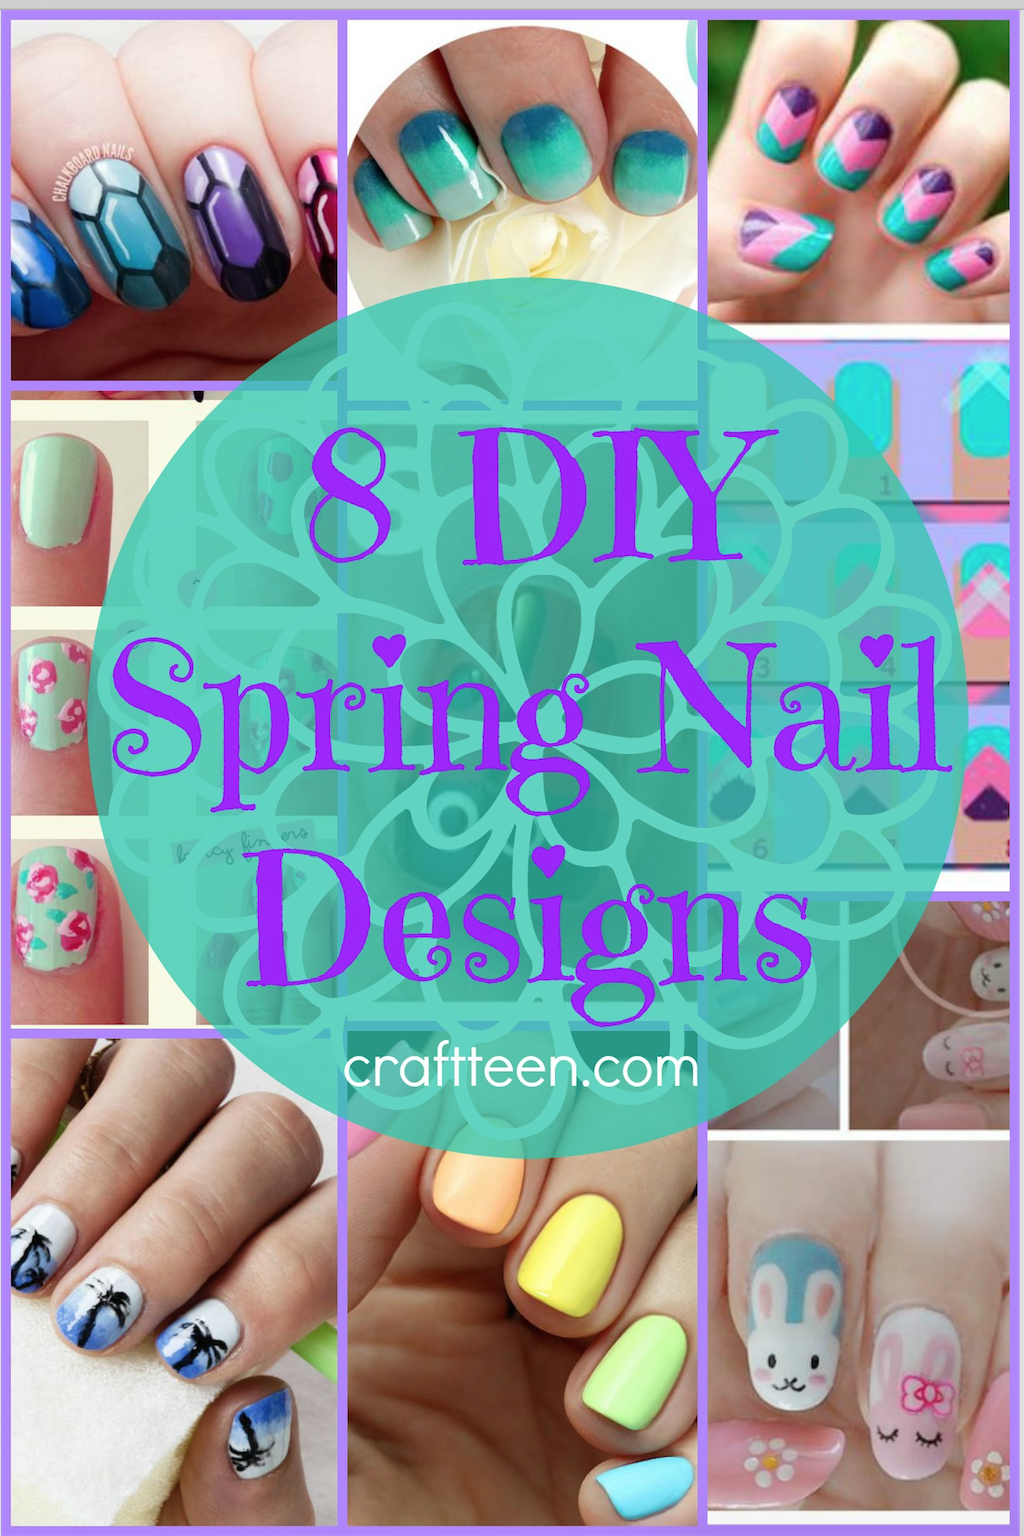 Really fun #DIY nail designs - we love nail art! | Crafts for Teens ...